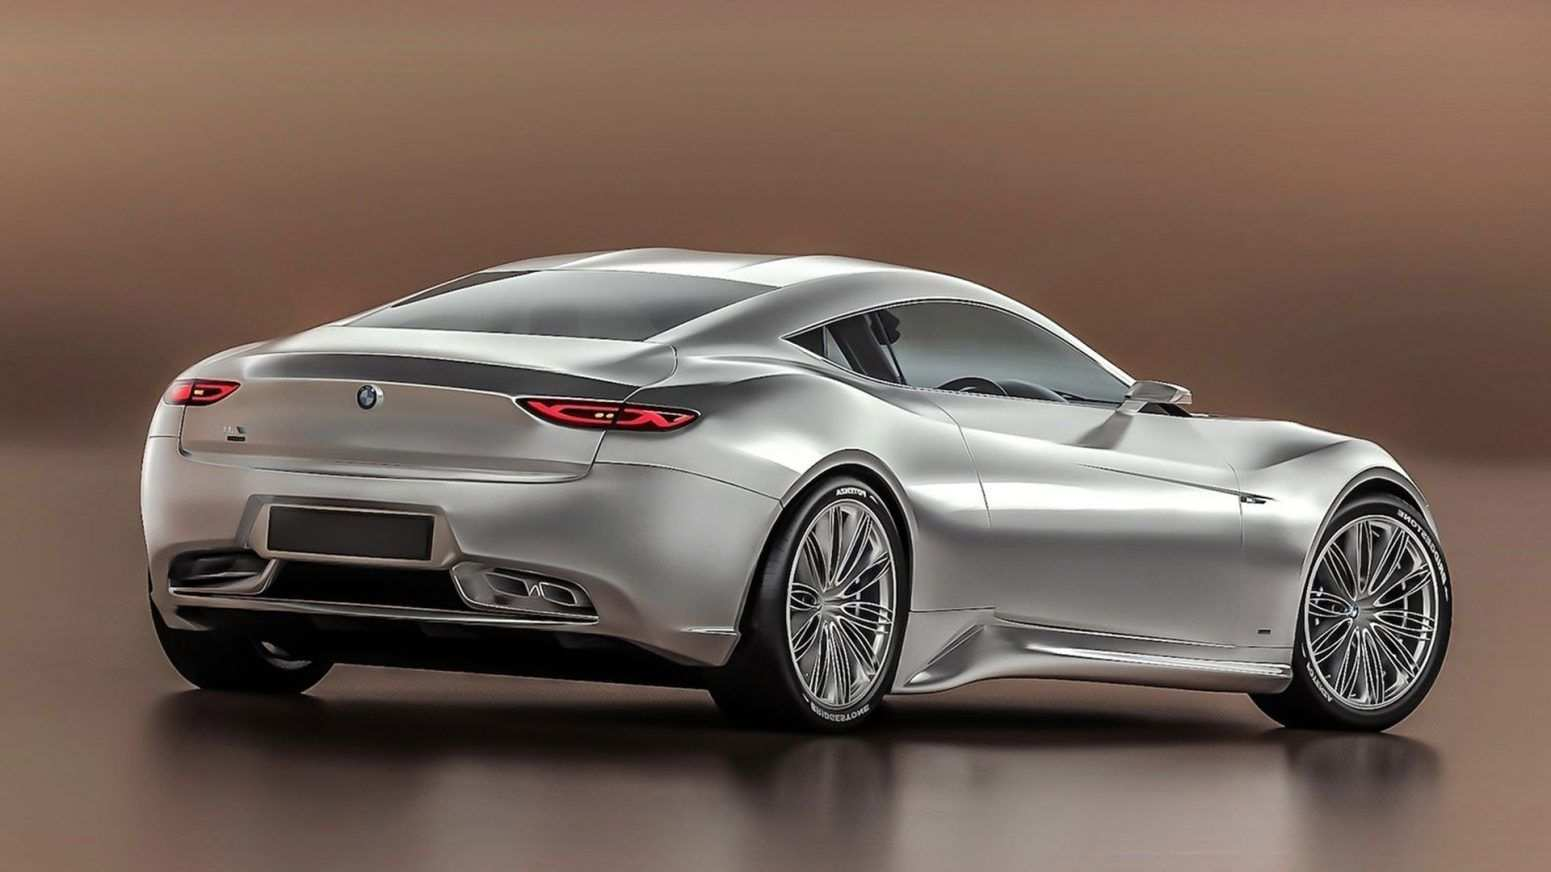 73 Concept of 2020 BMW M9 2020 New Concept with 2020 BMW M9 2020